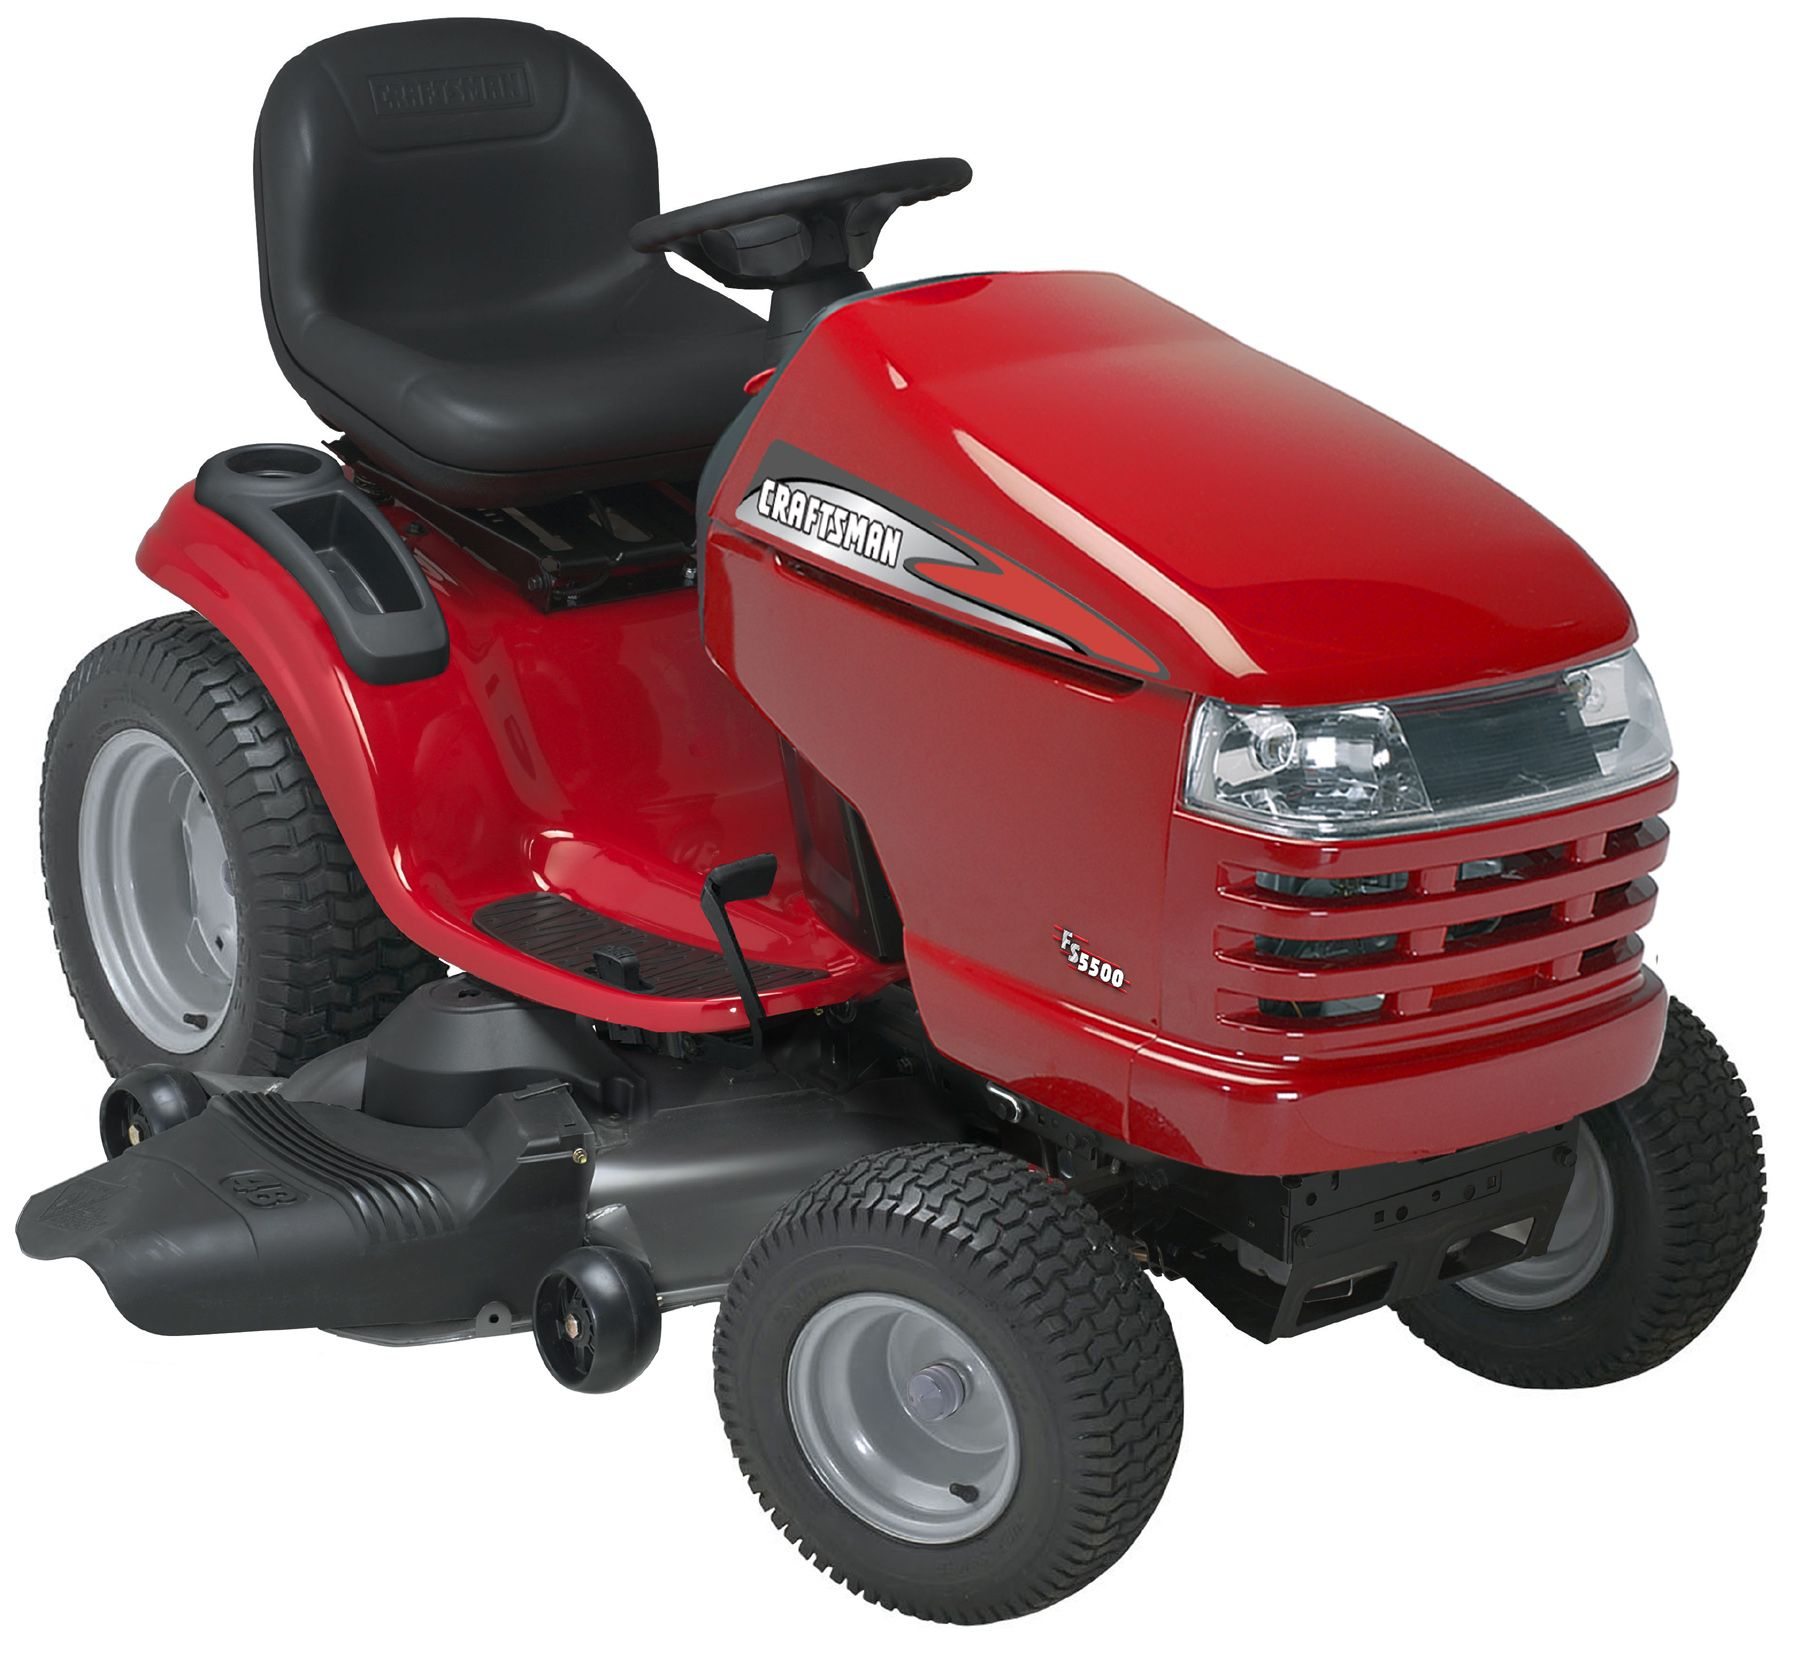 small resolution of spin prod 210956701 wid 200 hei 250 craftsman tractor parts model 917276843 sears partsdirect at cita craftsman riding mower model 917 manual